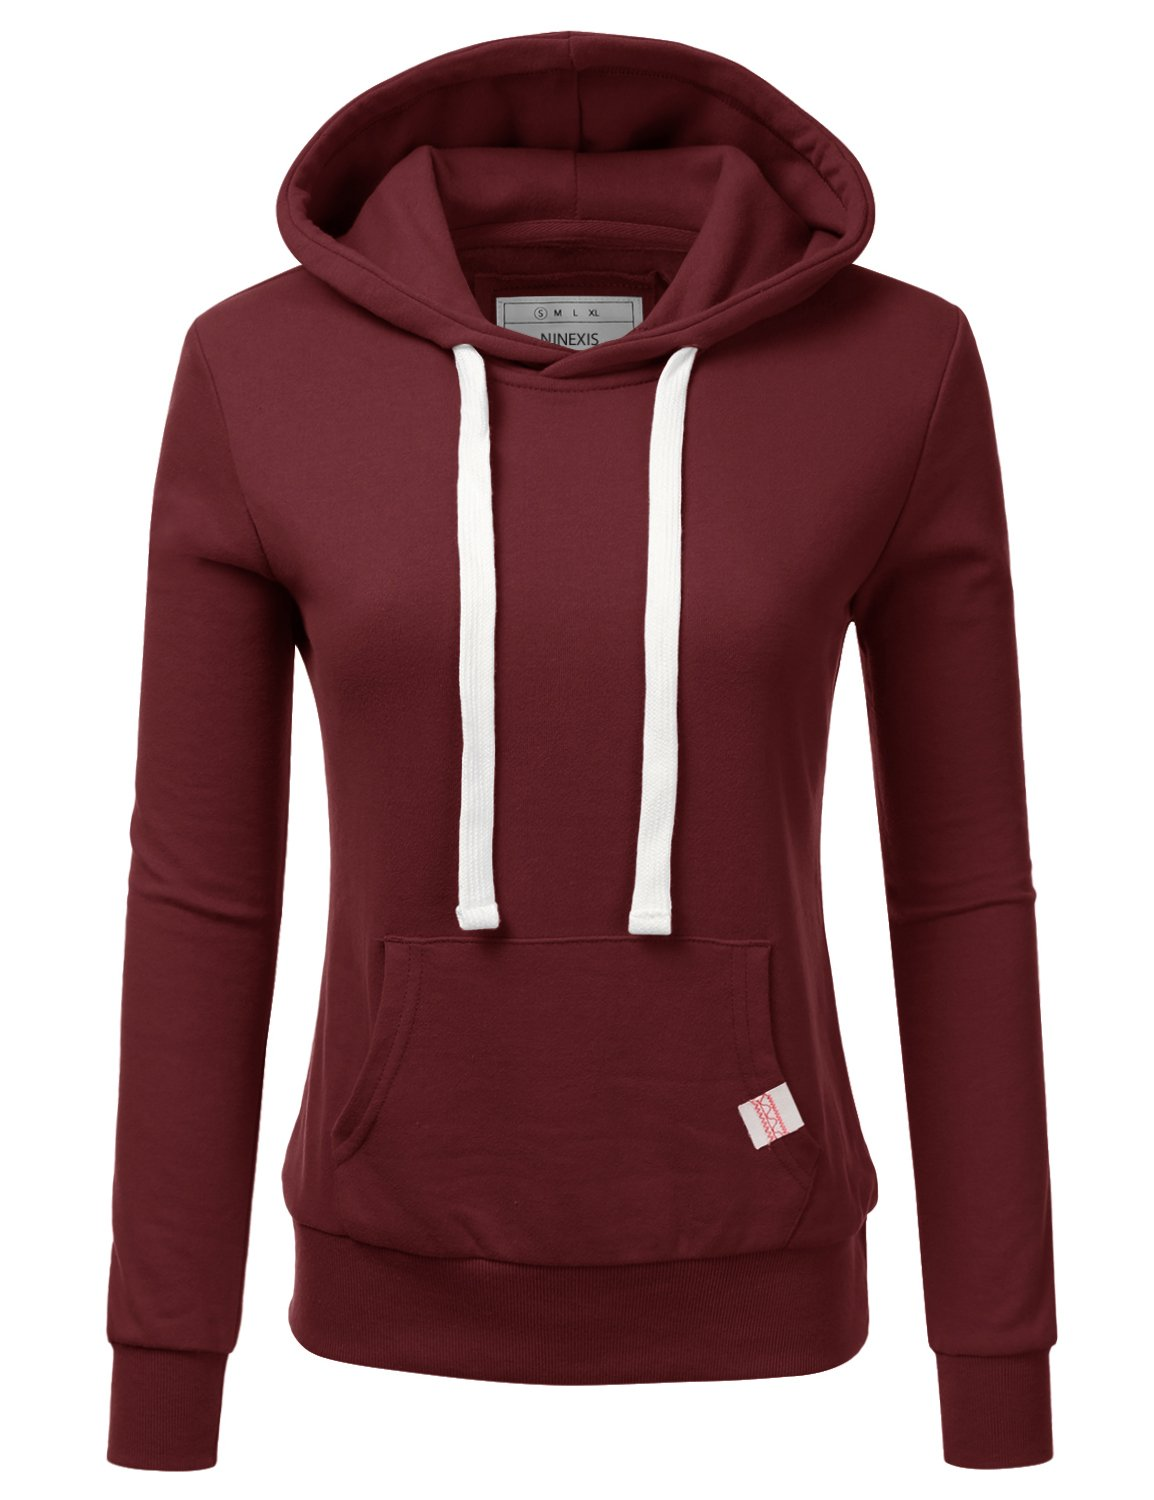 NINEXIS Womens Long Sleeve Fleece Pullover Hoodie Sweatshirts BURGUNDY L